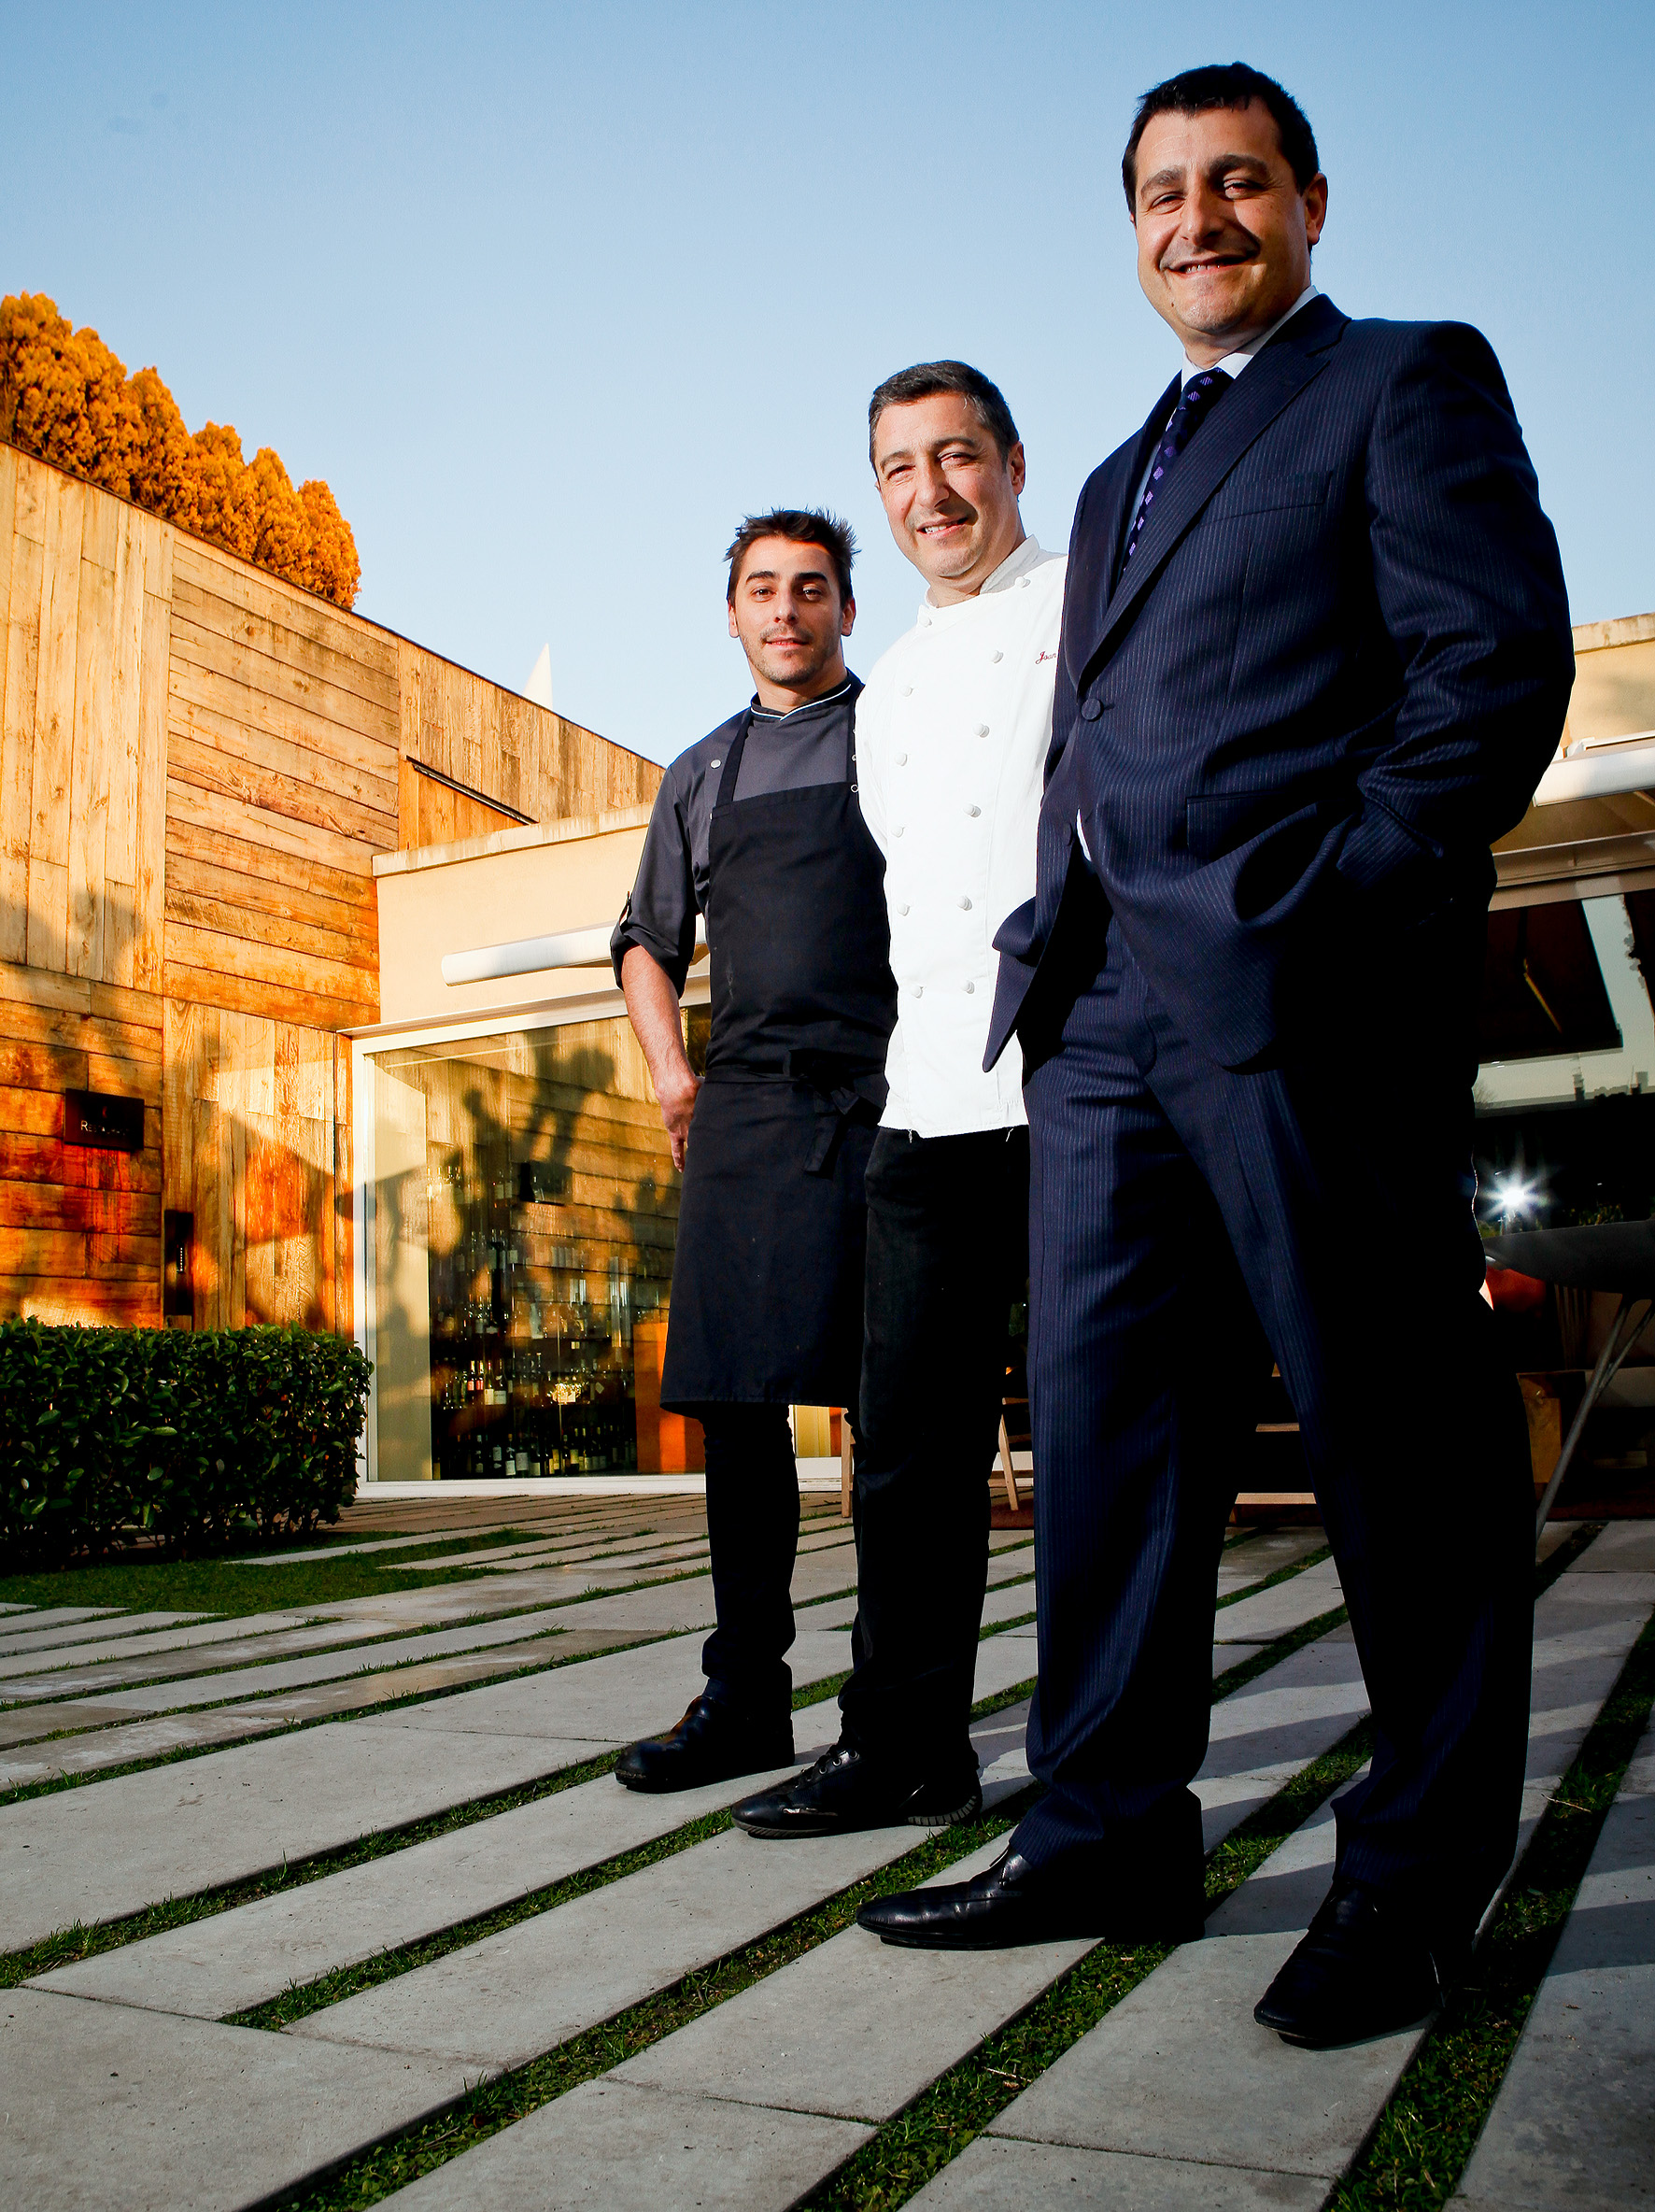 Chef Portraits | The Roca Brothers - El Celler Can de Roca | Girona, Spain 2012